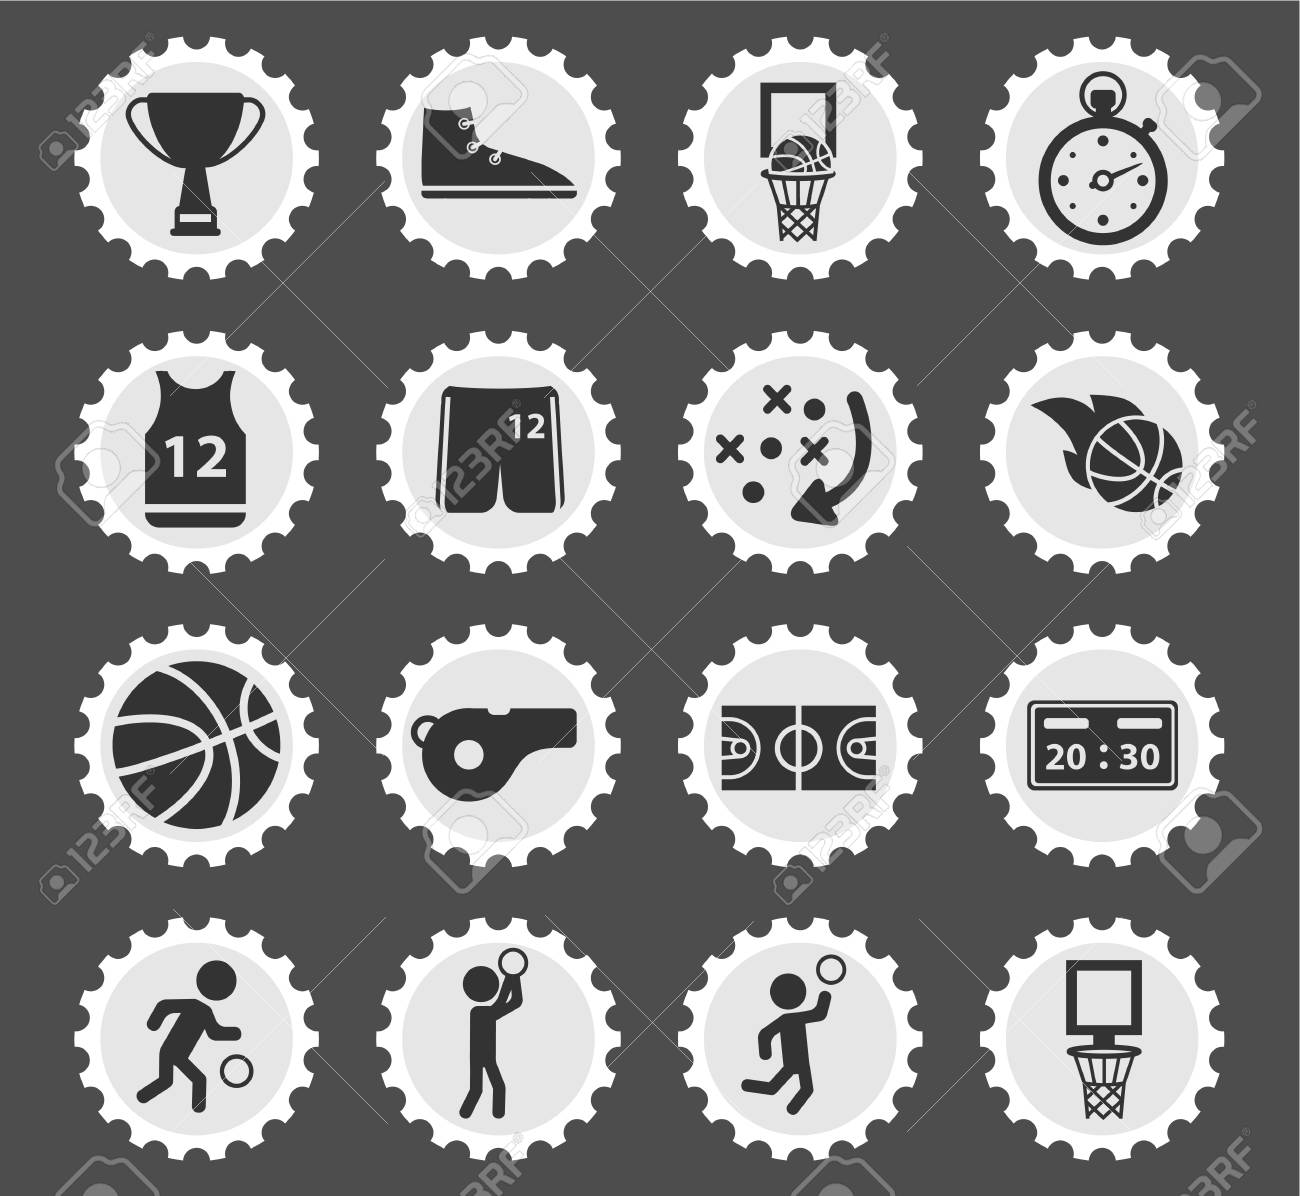 Basketball simply symbol for web icons and user interface royalty basketball simply symbol for web icons and user interface stock vector 54815259 biocorpaavc Choice Image